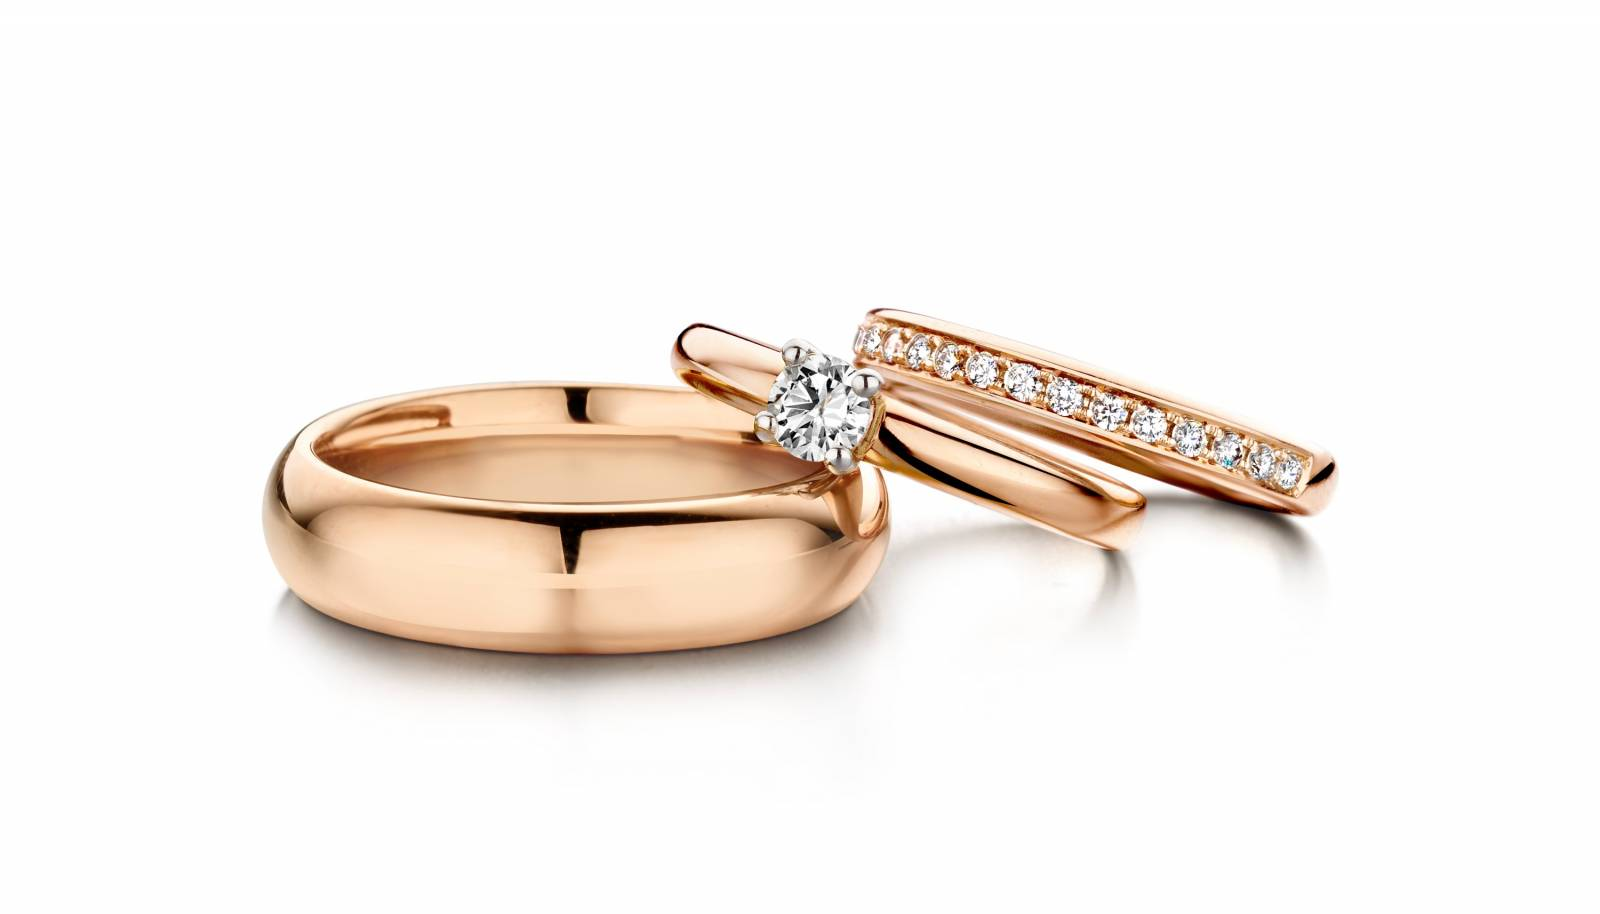 Martens Juwelier-Createur - House of Weddings  - 6